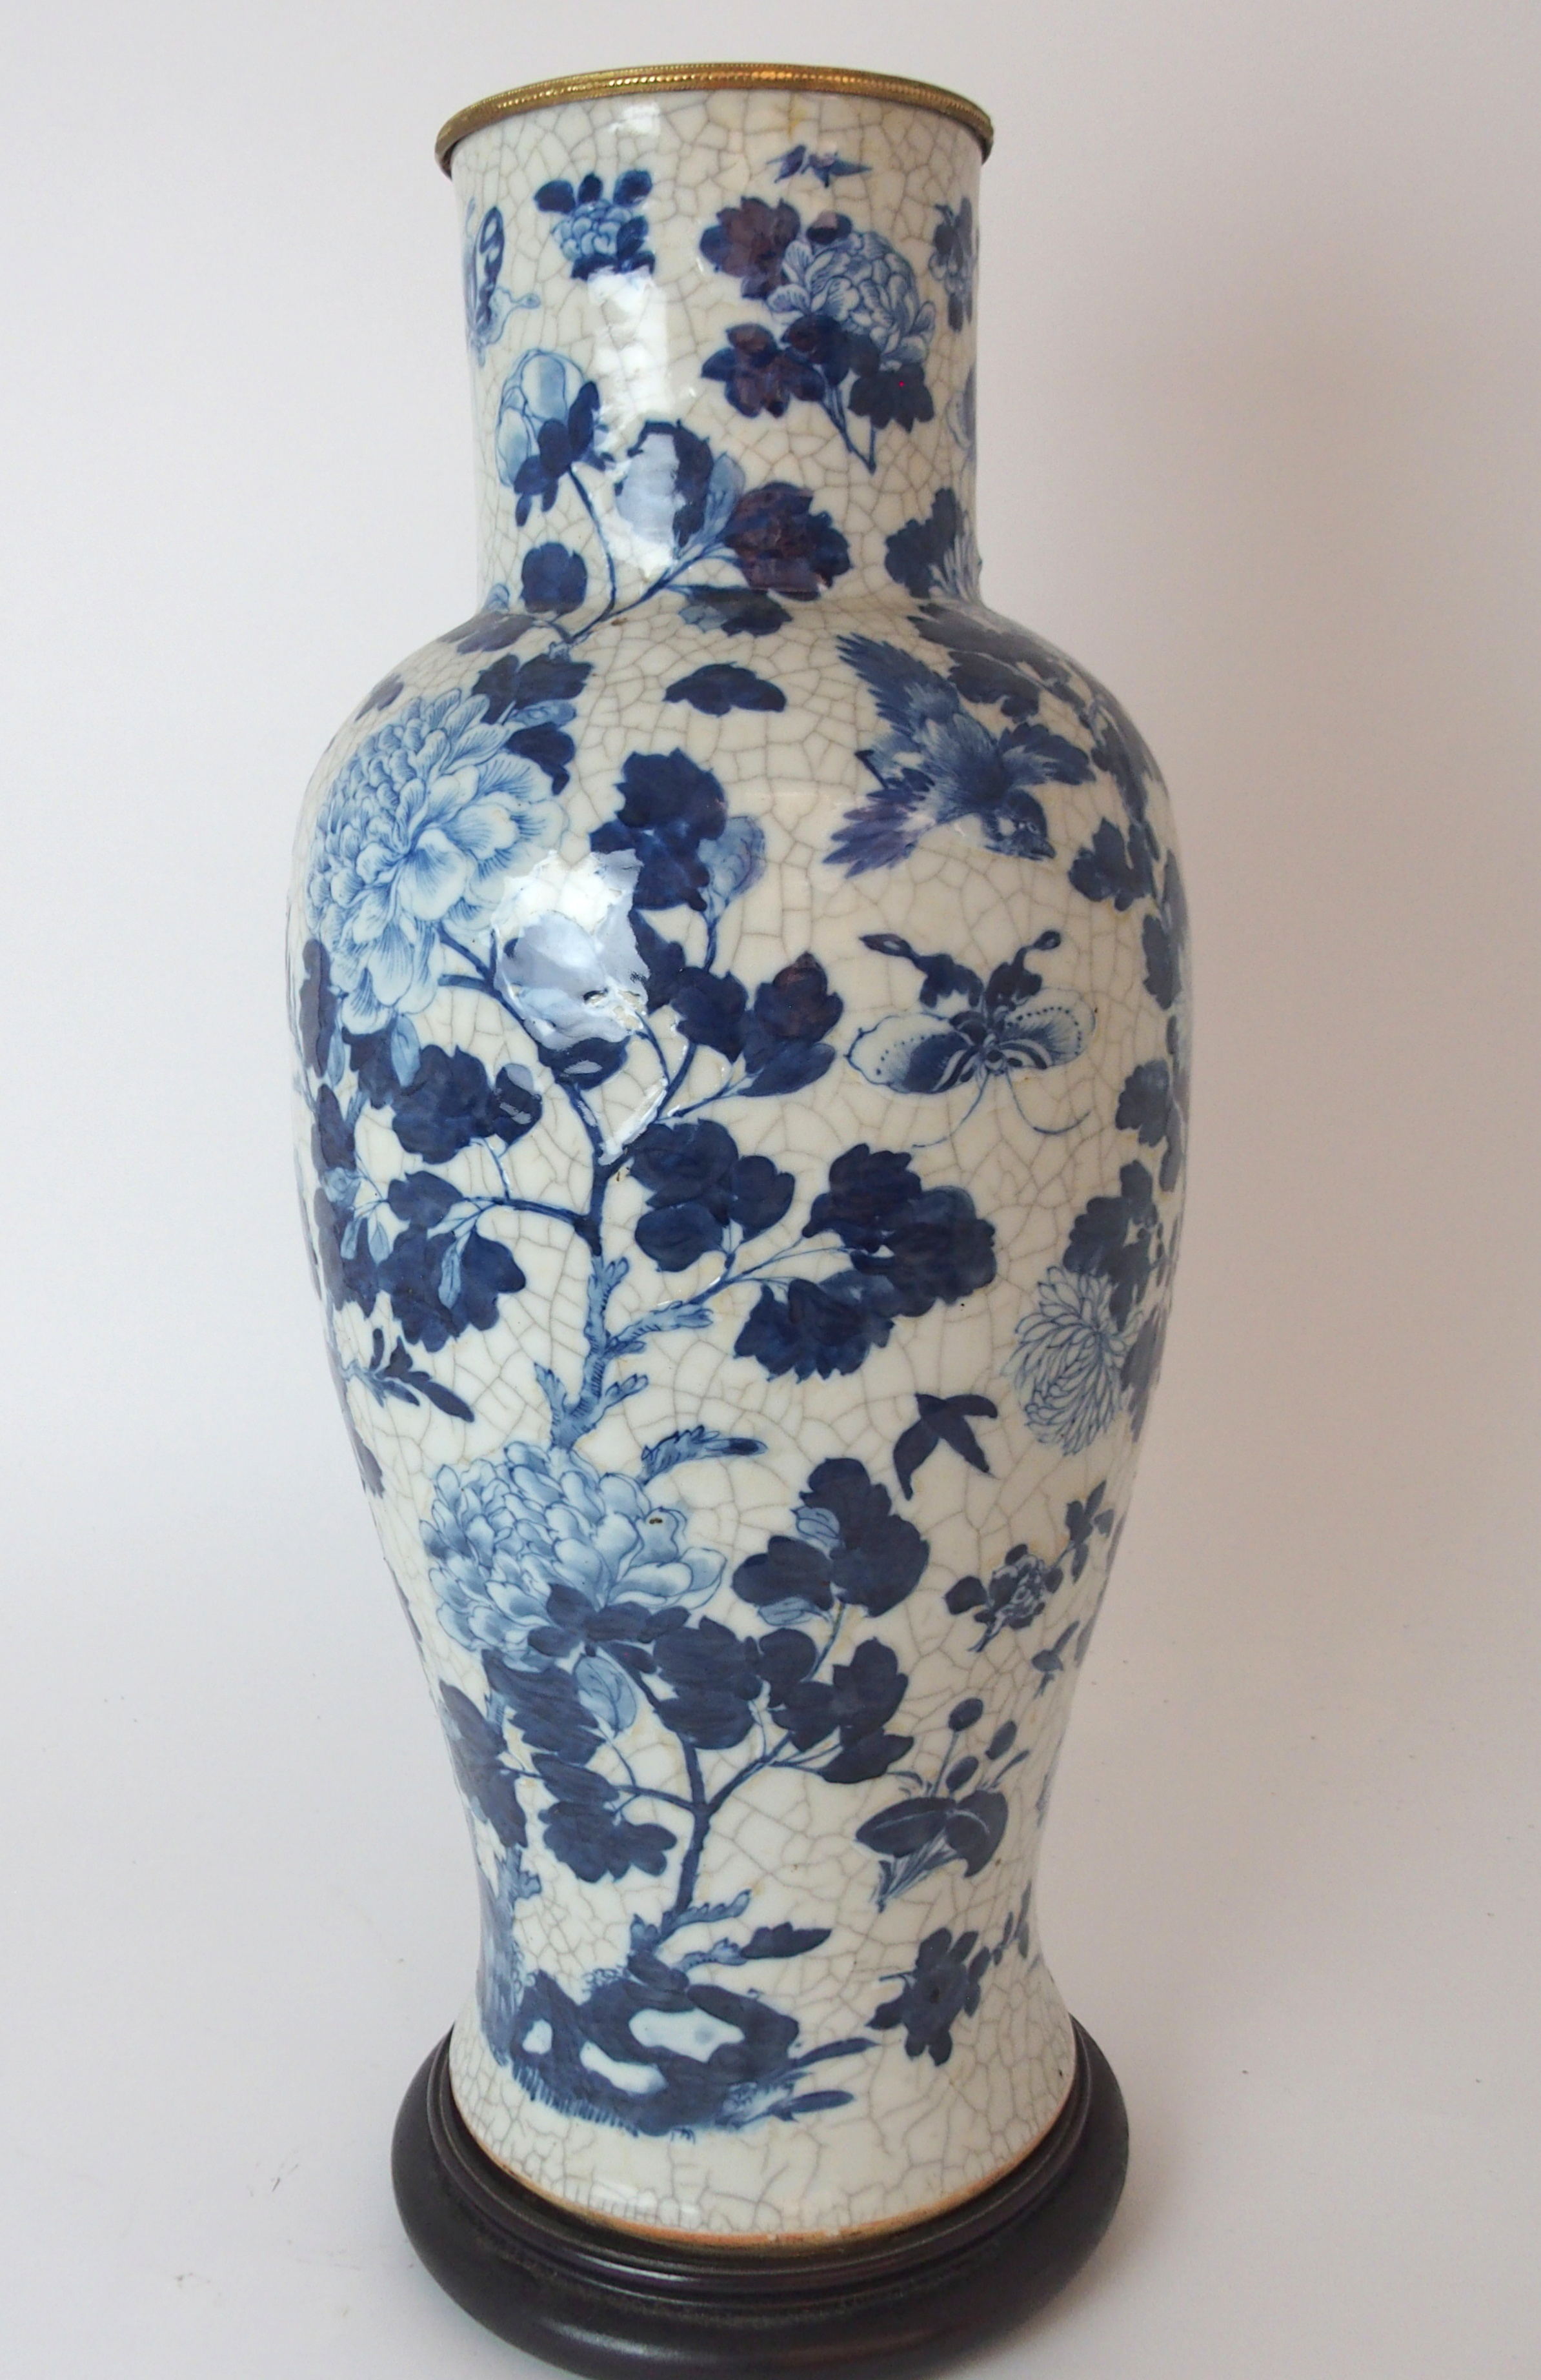 A LARGE CHINESE BLUE AND WHITE MOULDED VASE painted with birds and bats amongst peonies - Image 7 of 11